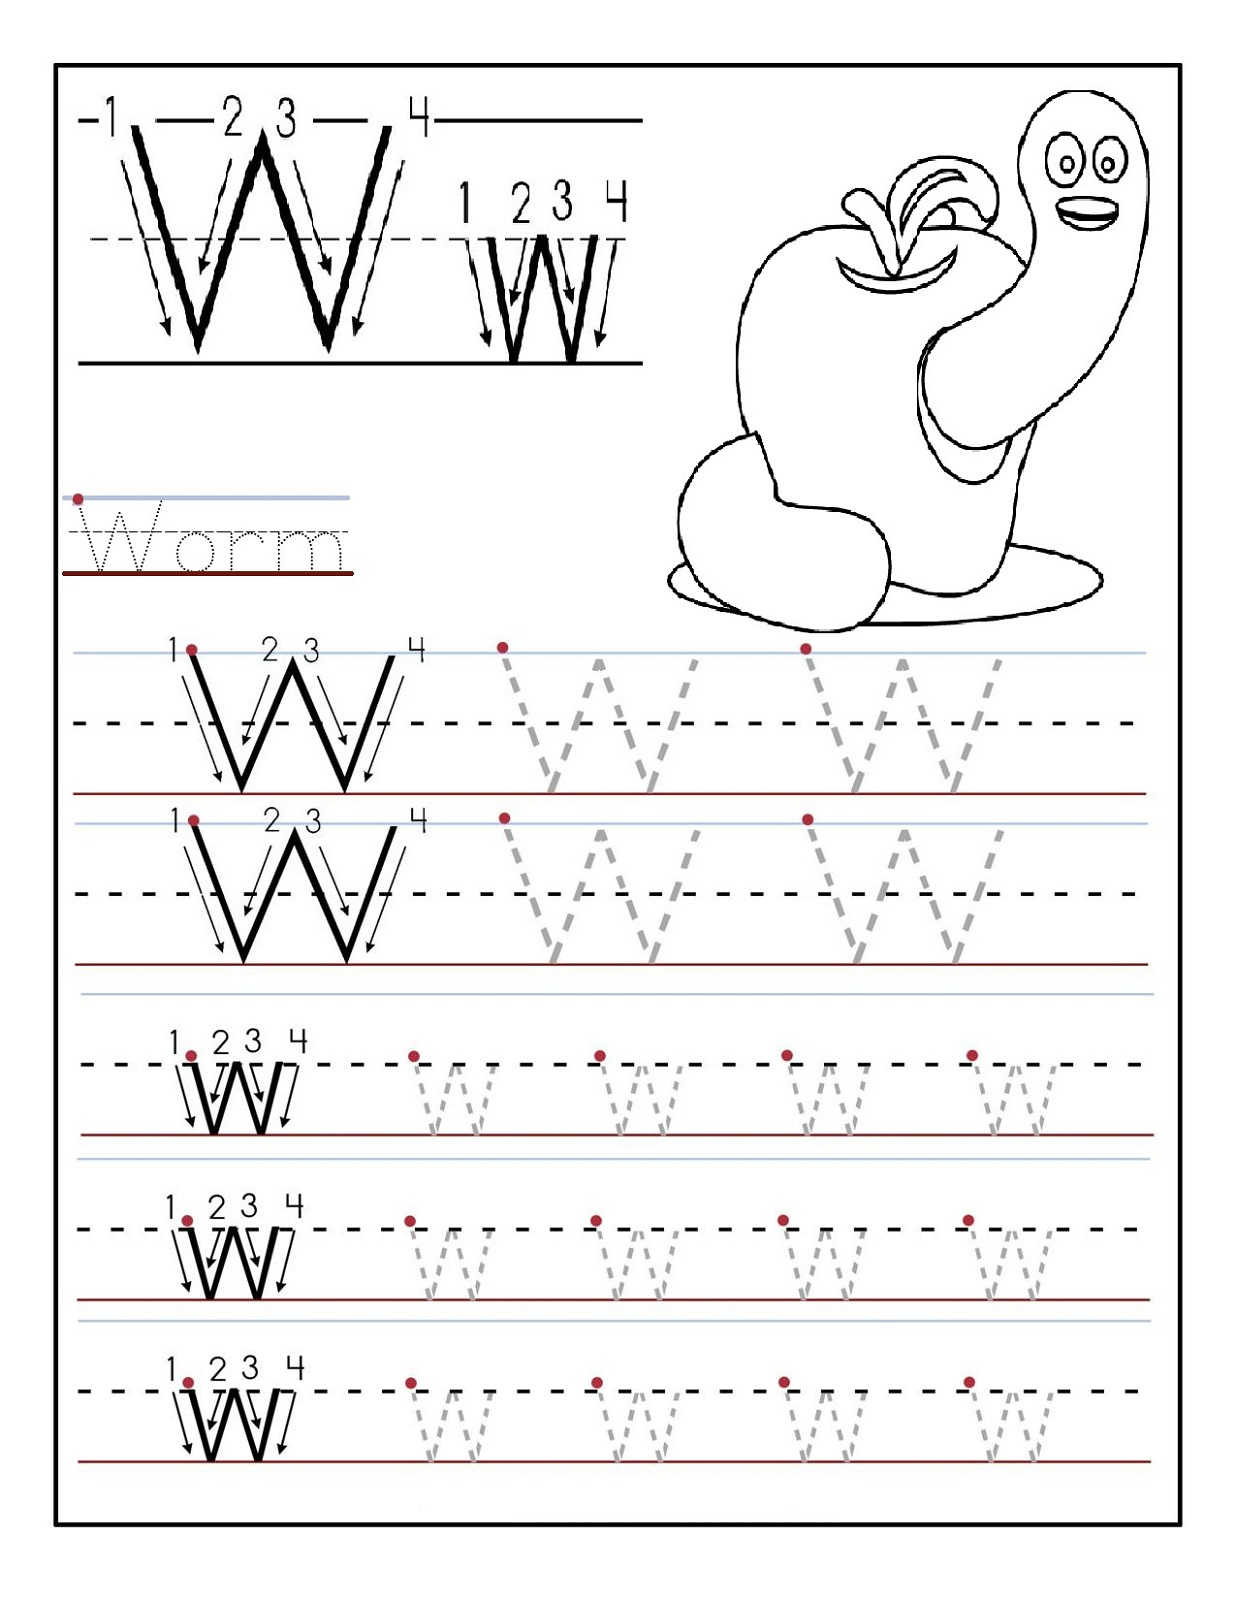 Preschool Alphabet Worksheets Worm With